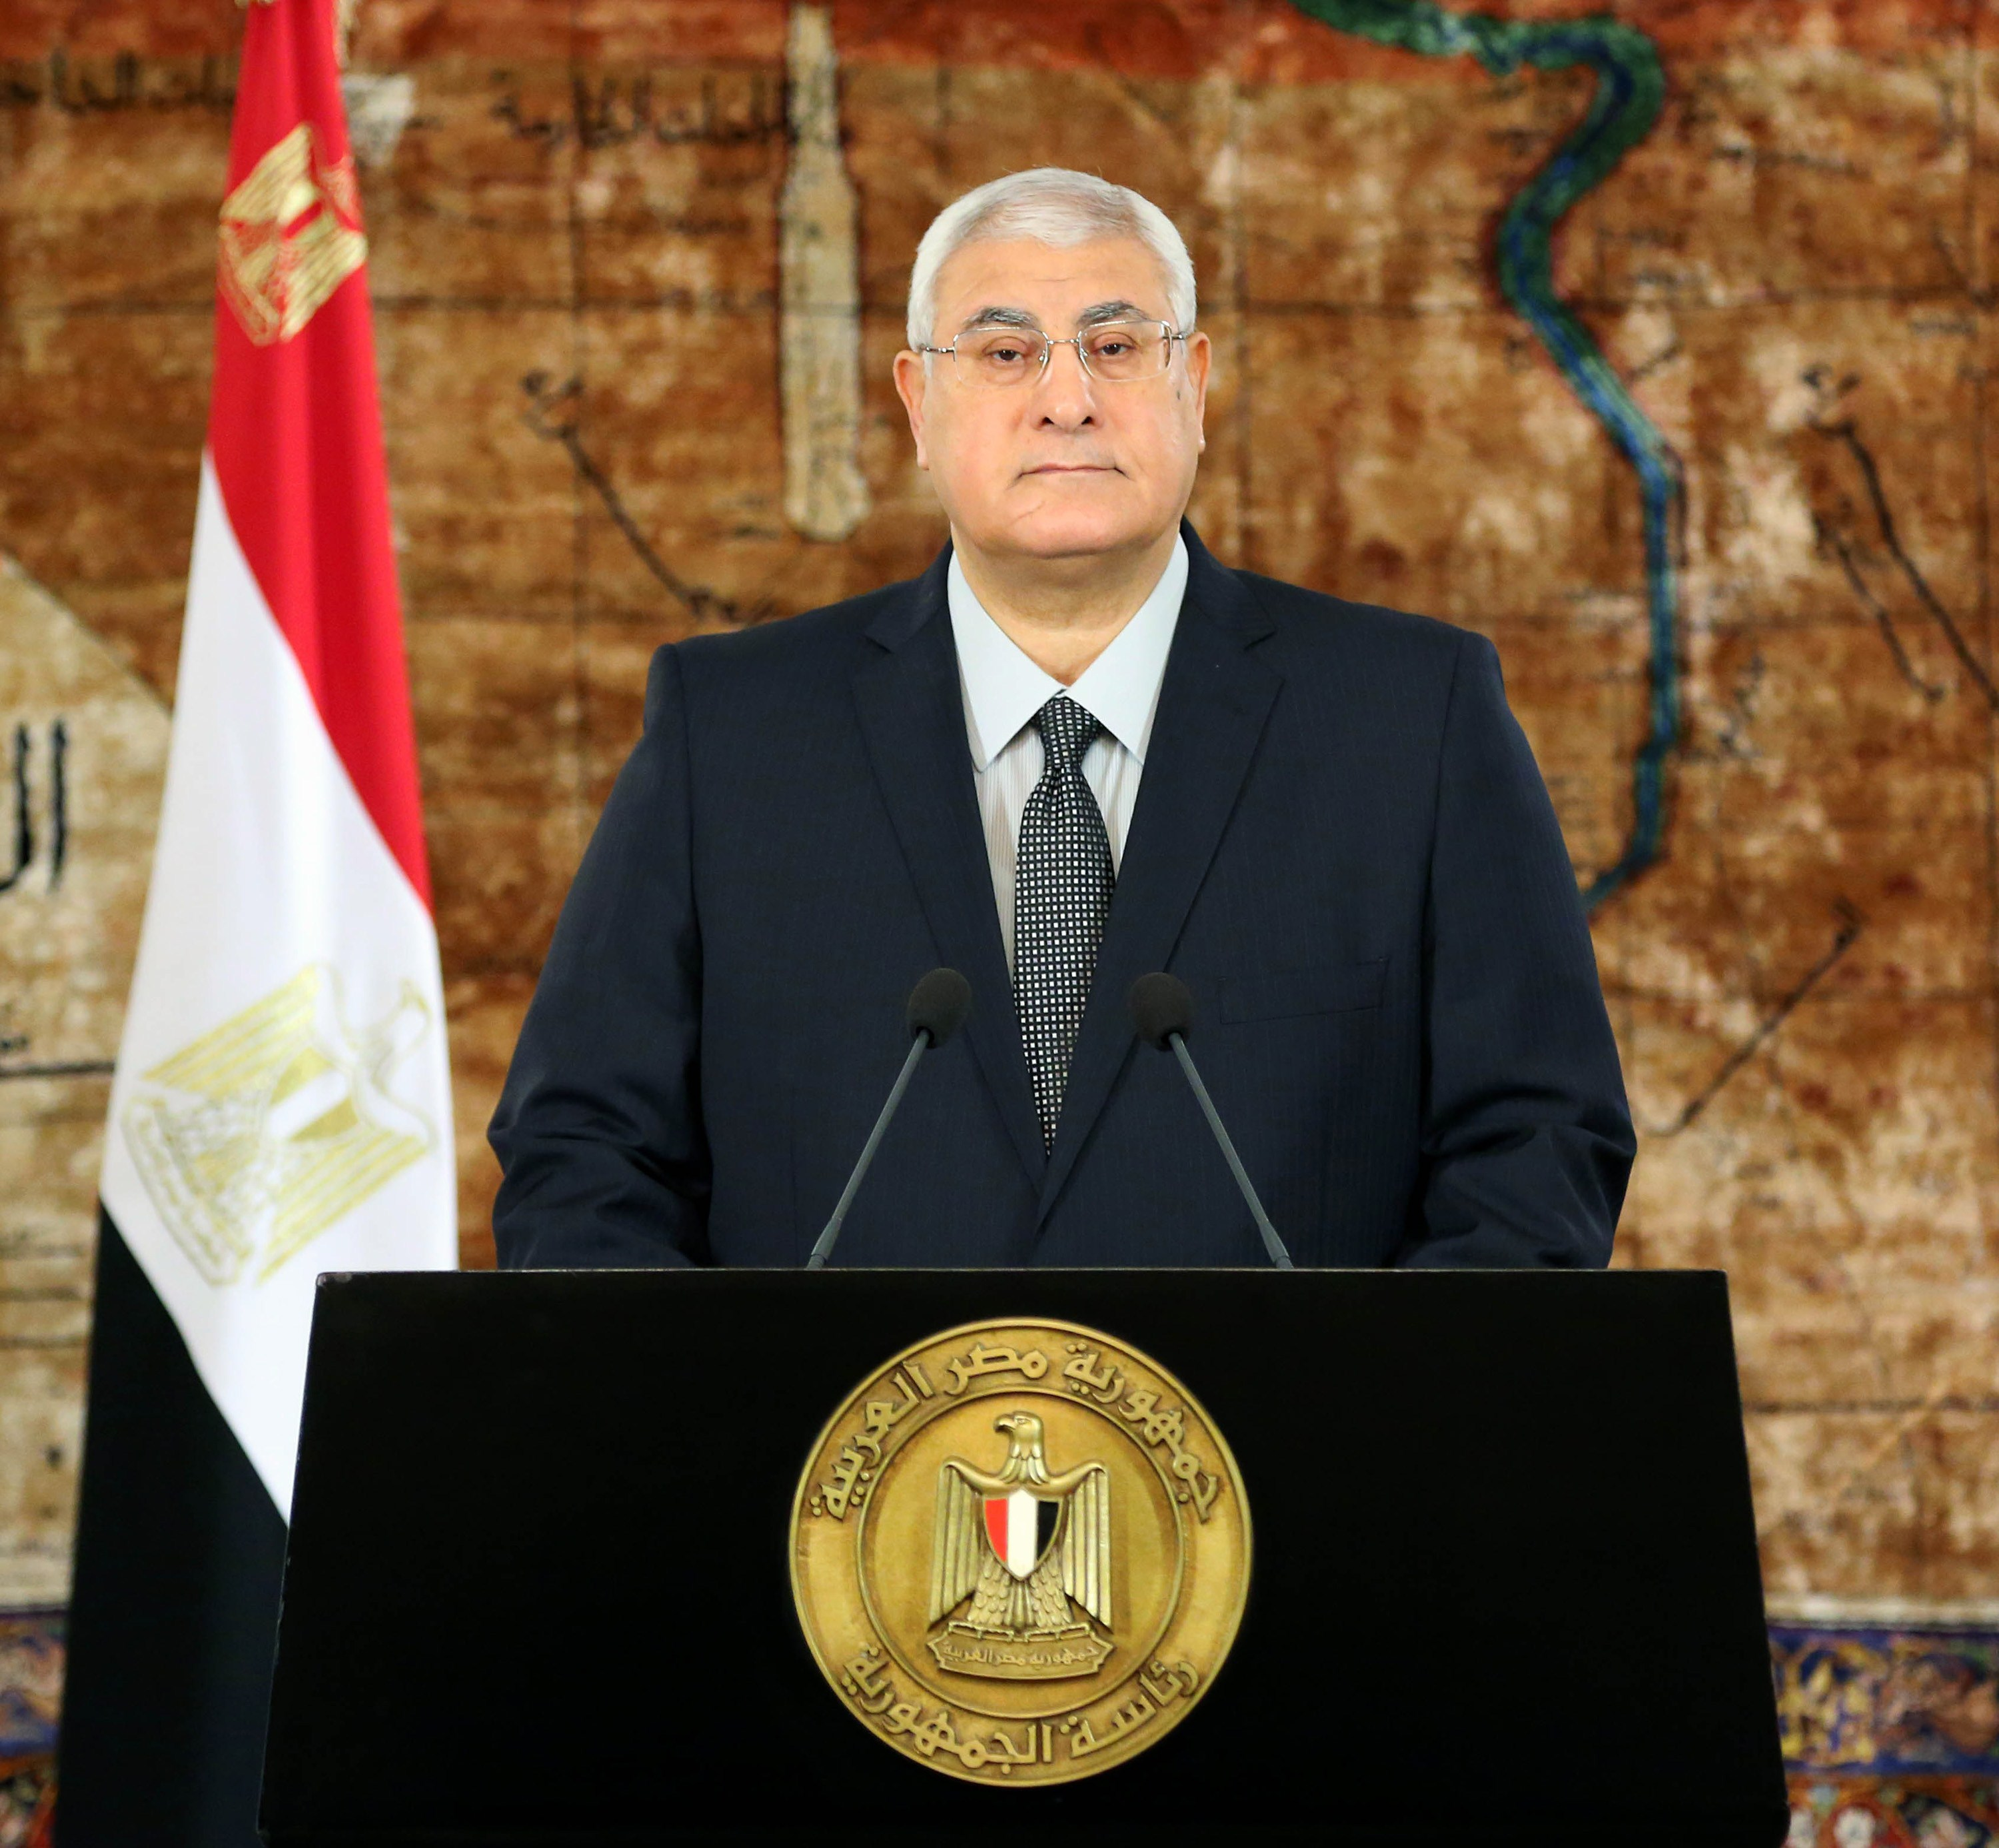 In this handout picture taken and released by the Egyptian Presidency,  Egypt's interim president Adly Mansour addresses the nation in Cairo on May 25, 2014, calling for people to vote in the upcoming Presidential election. Egyptians will vote on May 26 and May 27 in a presidential election and Army chief Abdel Fattah al-Sisi , who overthrew President Mohamed Morsi 11 months ago, is seen by many as the front runner.   (AFP PHOTO/ Egyptian Presidency)